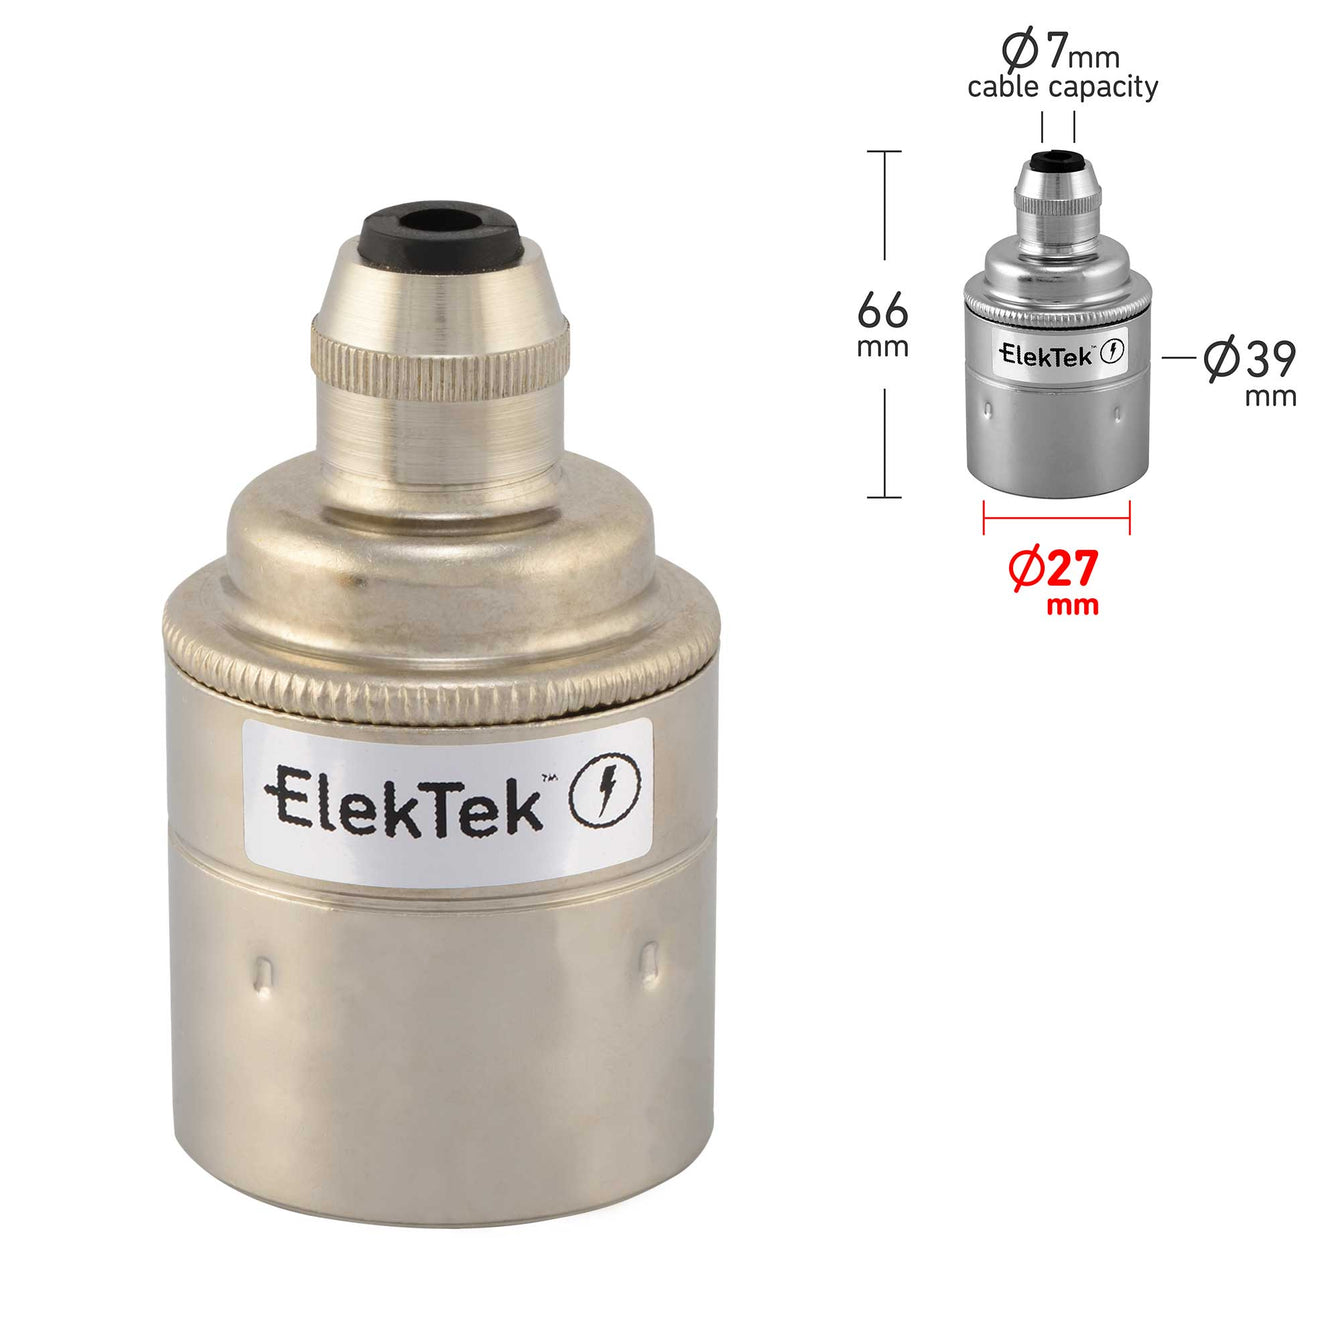 ElekTek ES Edison Screw E27 Cord Grip Pendant Lamp Holder Plain Skirt Brass - Buy It Better